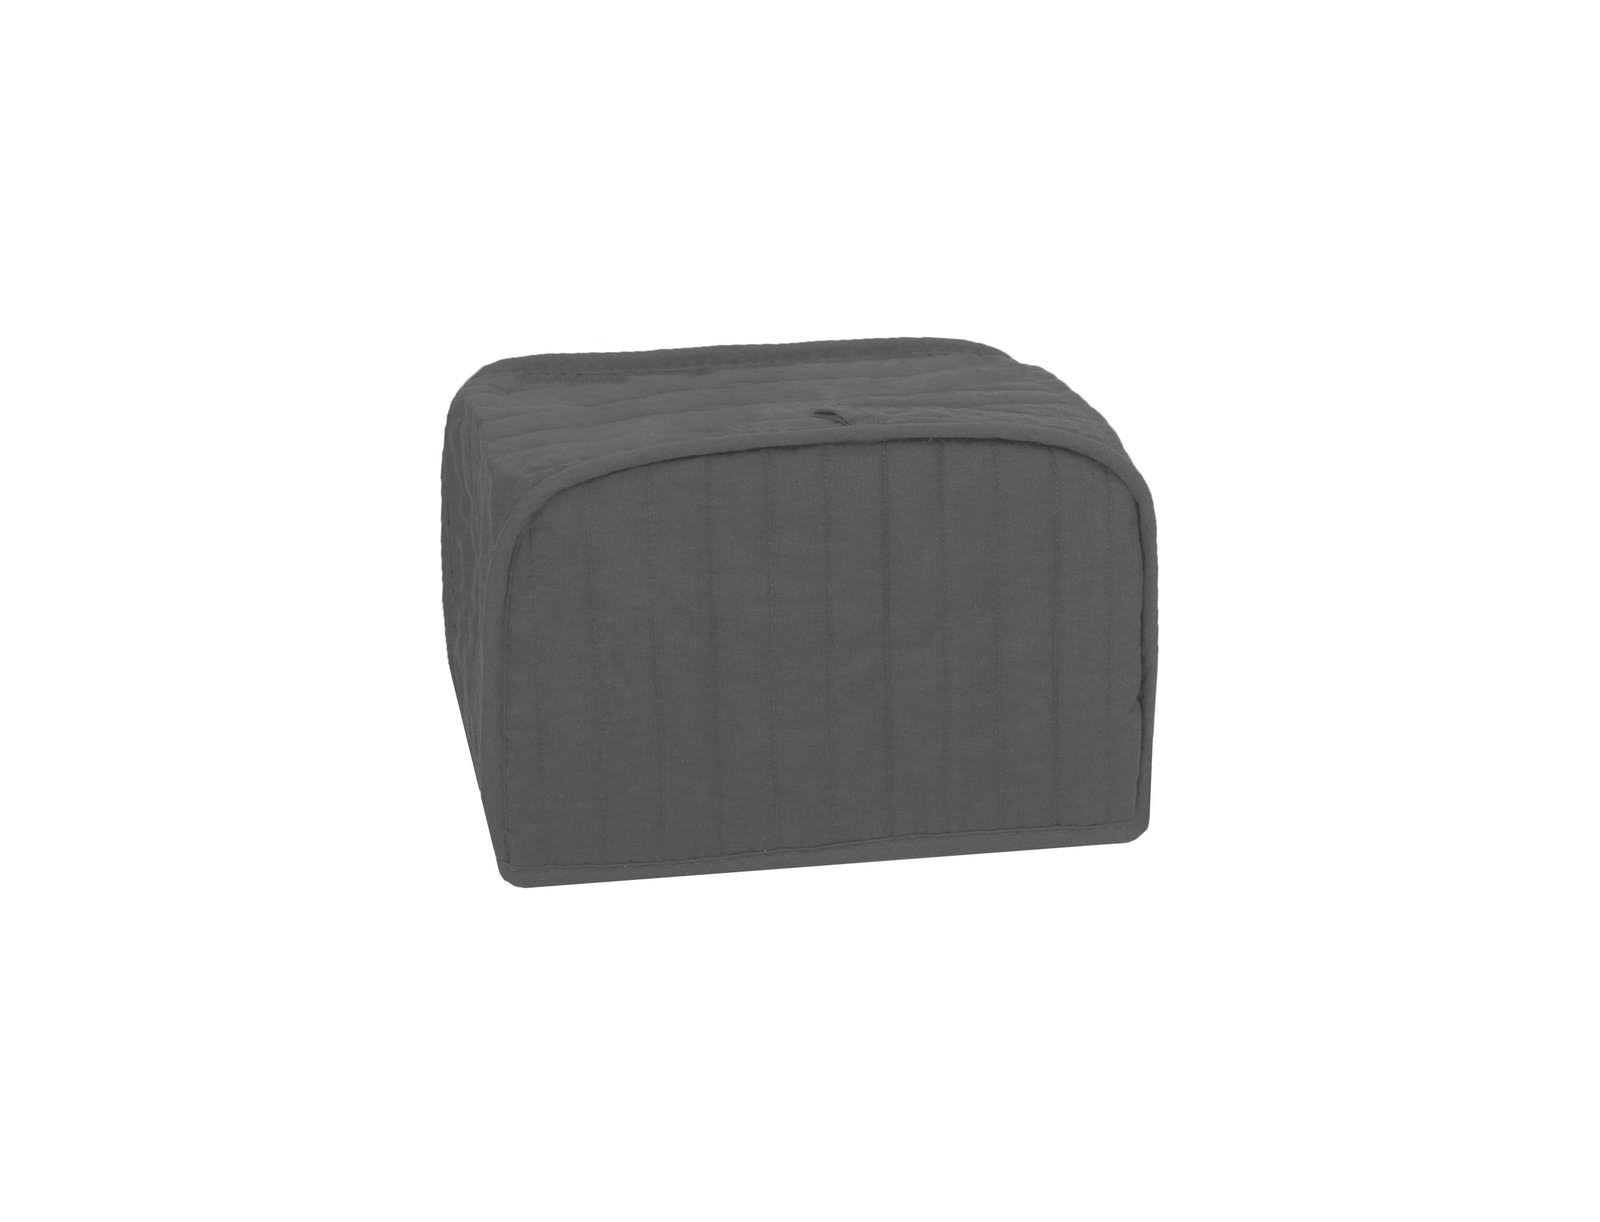 Ritz Quilted Four Slice Toaster Appliance Cover, Graphite